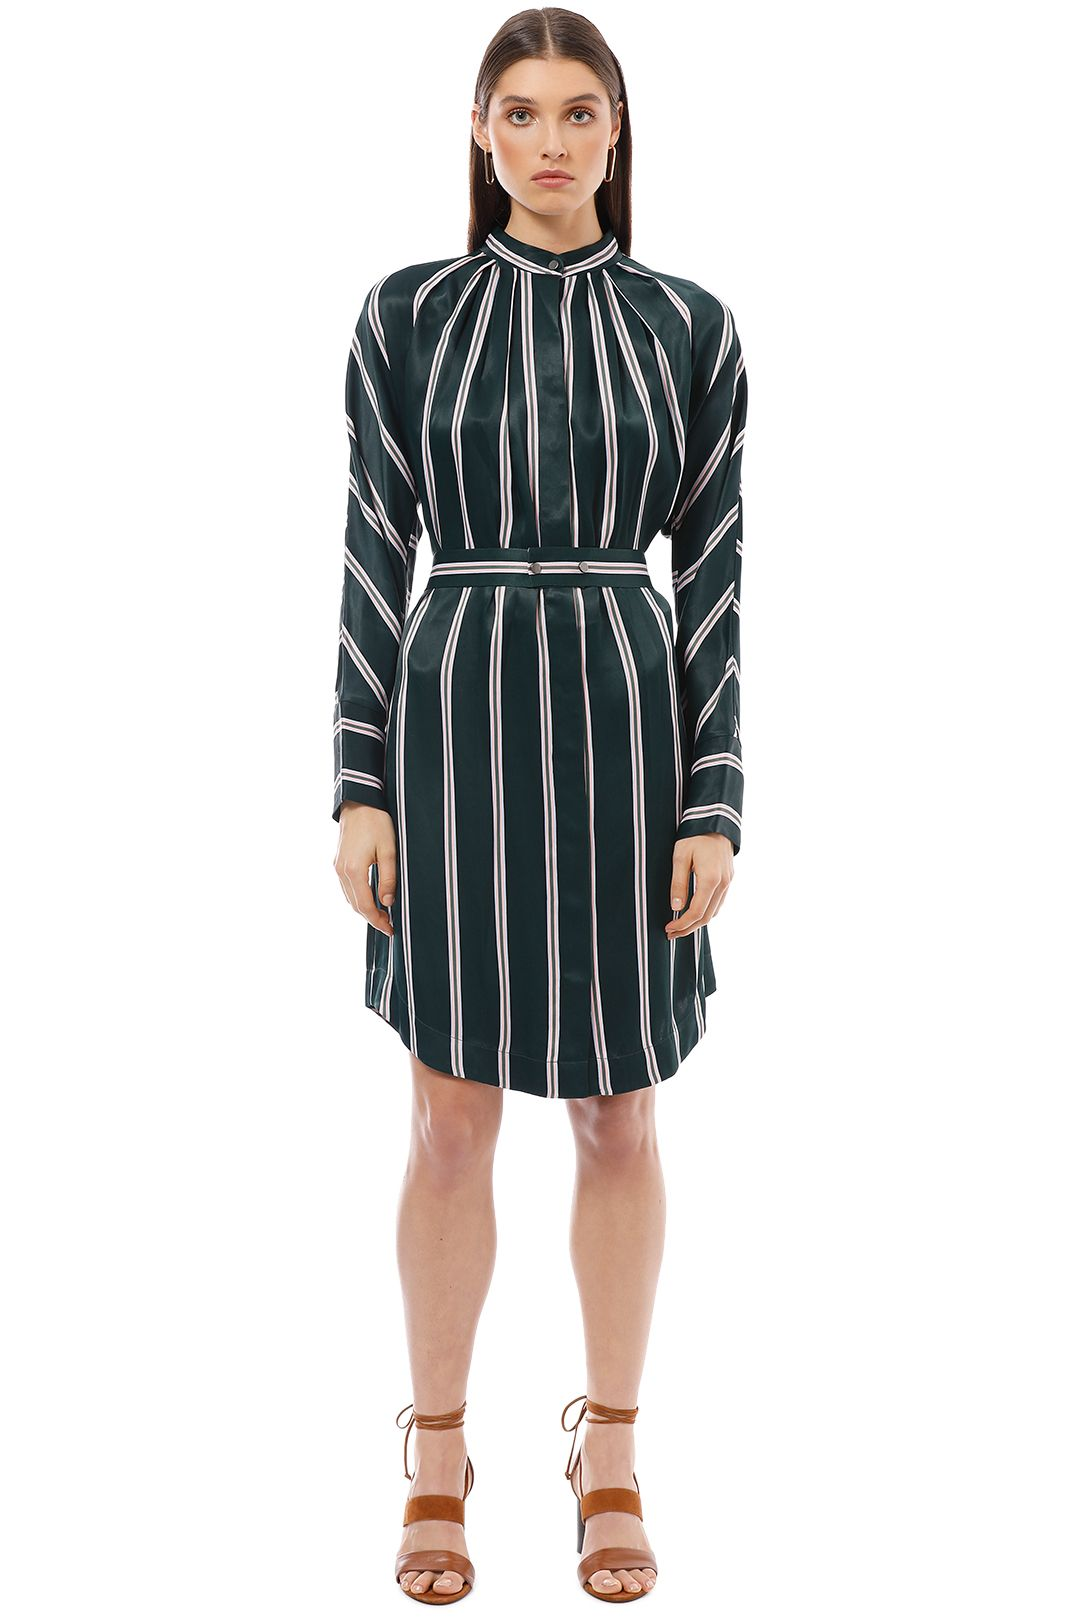 Saba - Ellis Stripe Dress - Green - Front